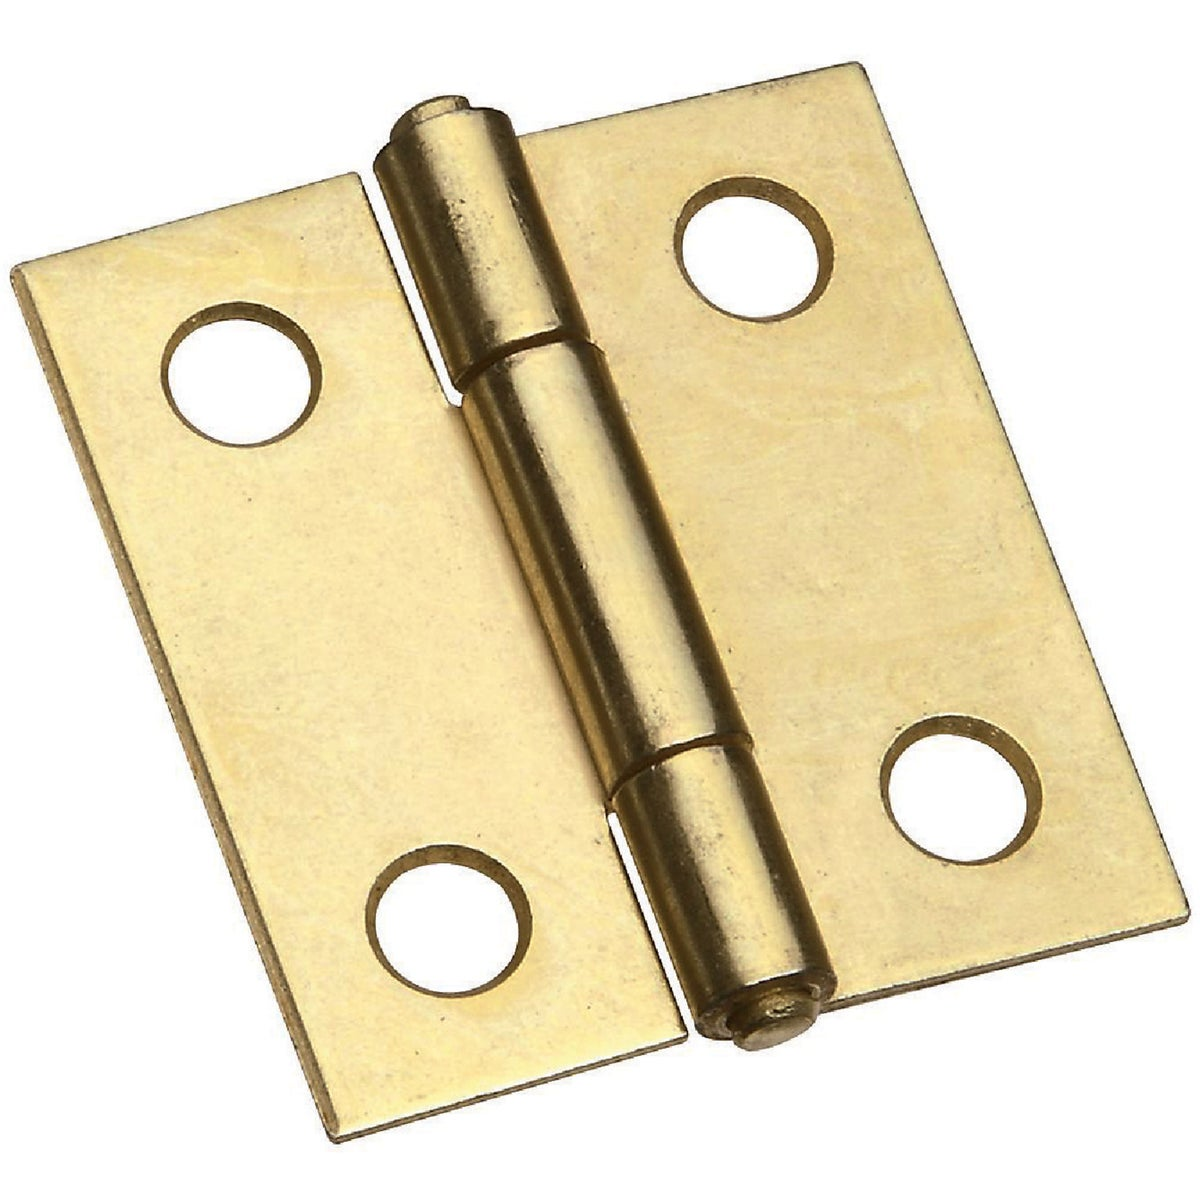 "1-1/2"" BRS PIN HINGE - N146068 by National Mfg Co"